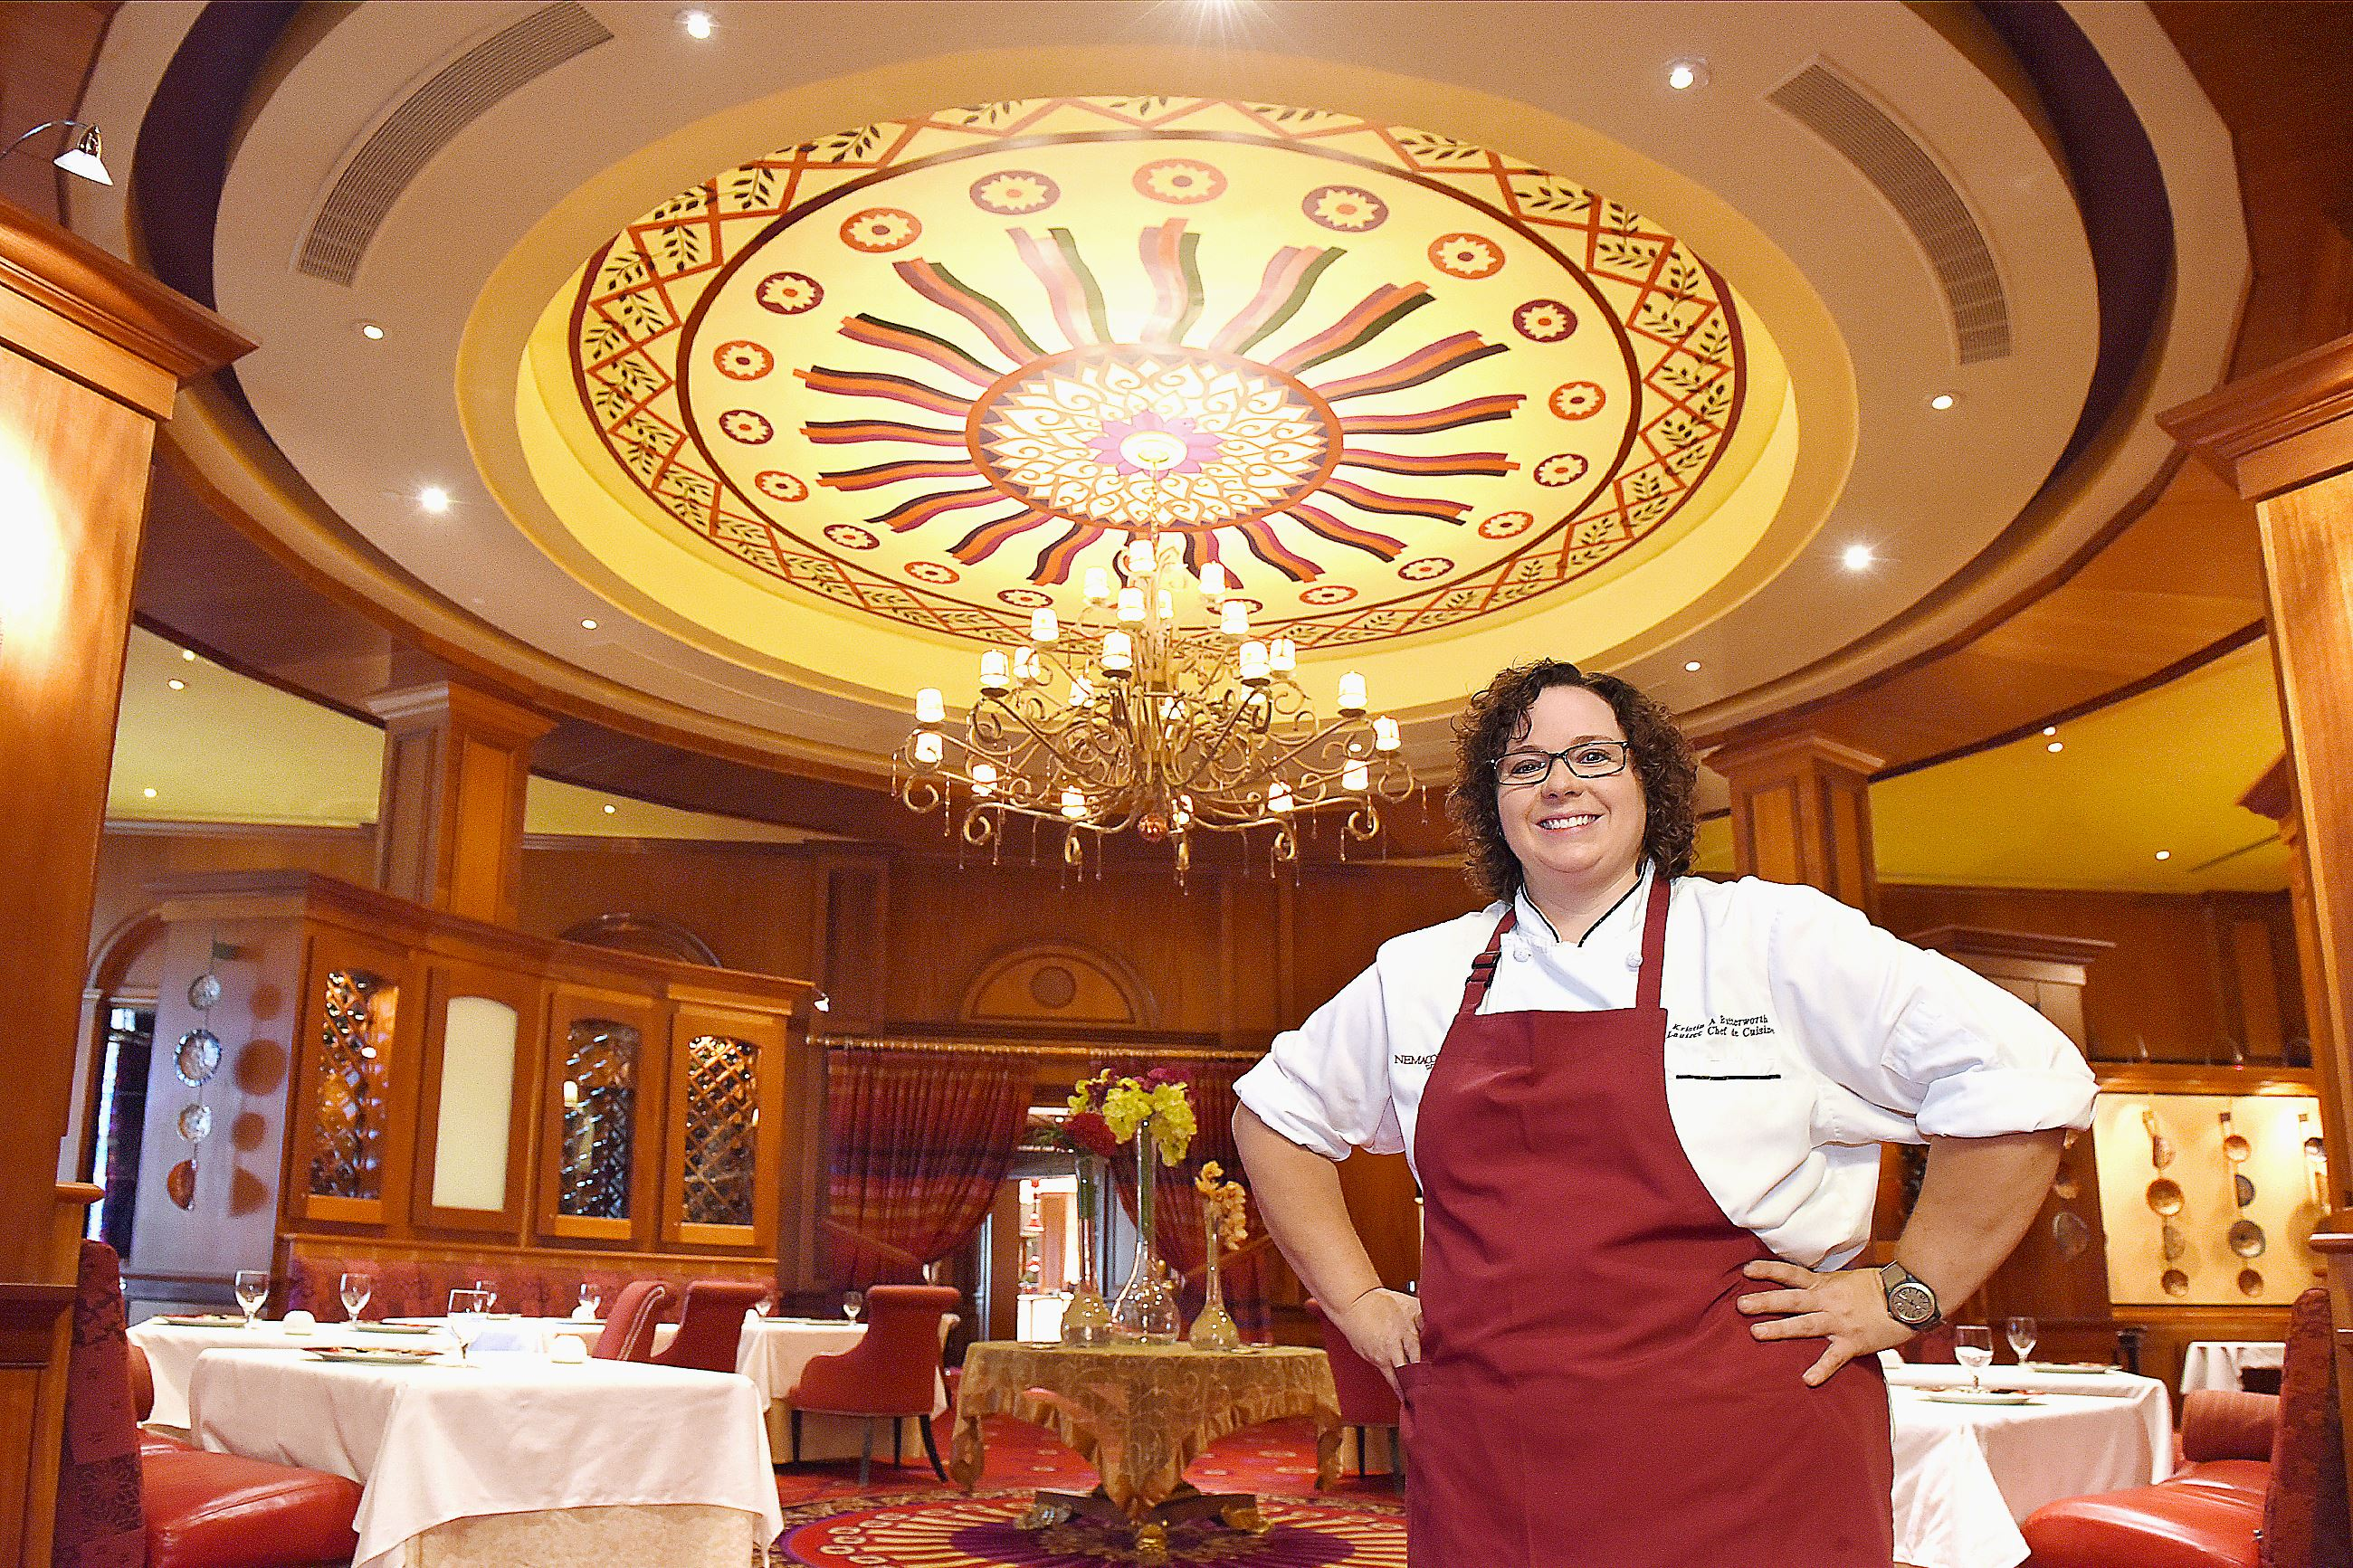 20150910radButterworthMag01 Lautrec restaurant Chef de Cuisine Kristin Butterworth at the Nemacolin Woodlands Resort in Farmington, Fayette County.